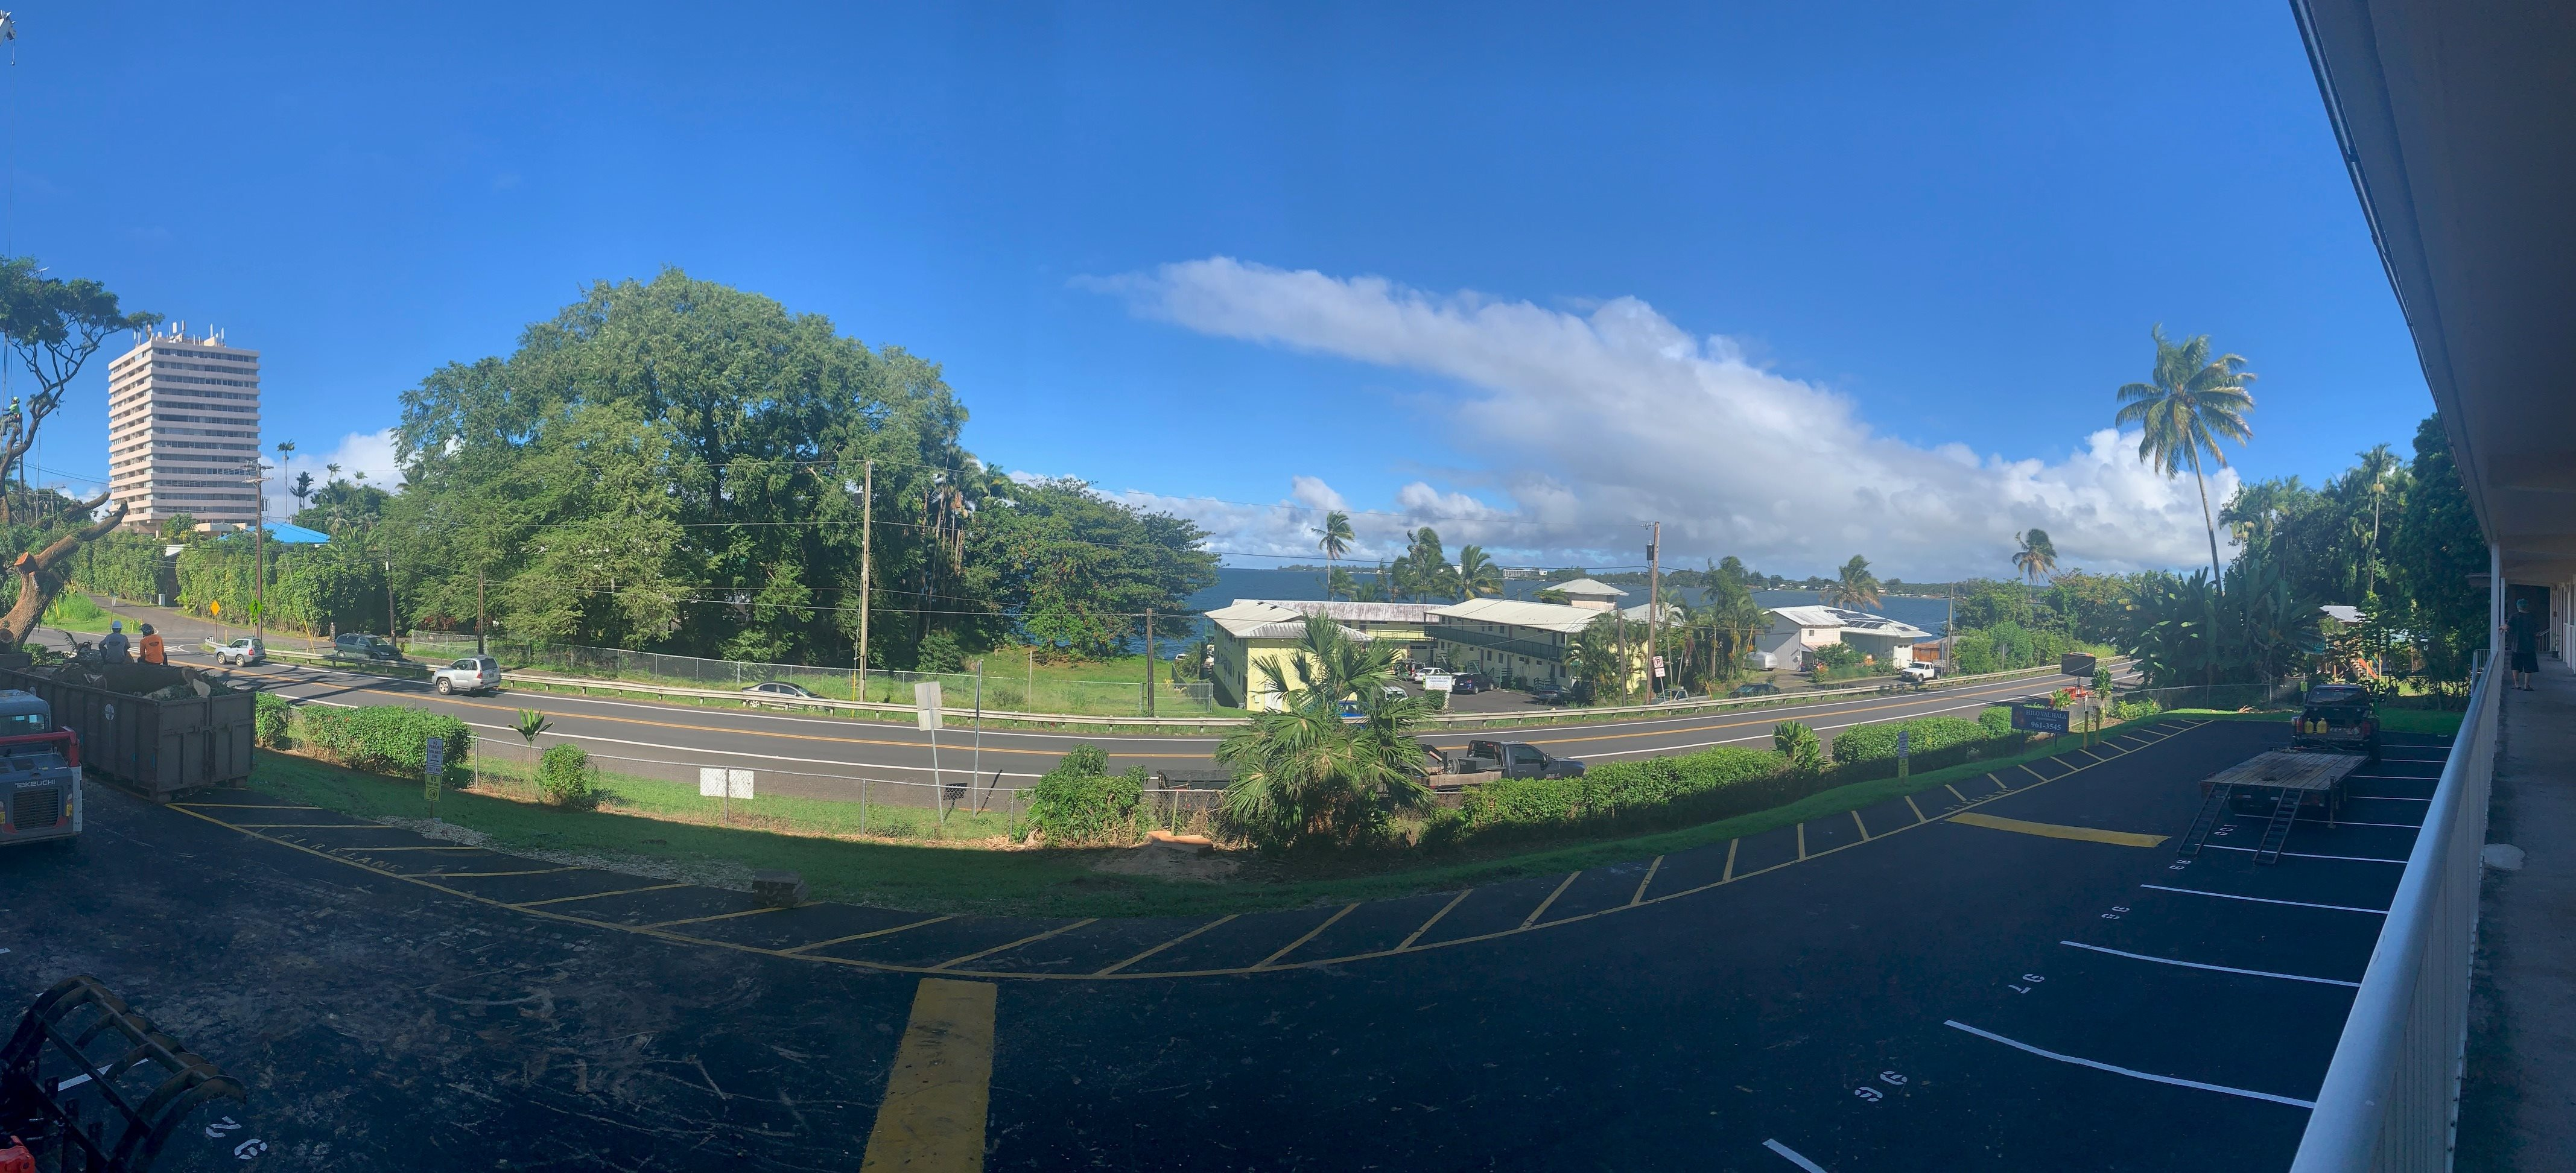 Hilo Val Hala parking lot and street